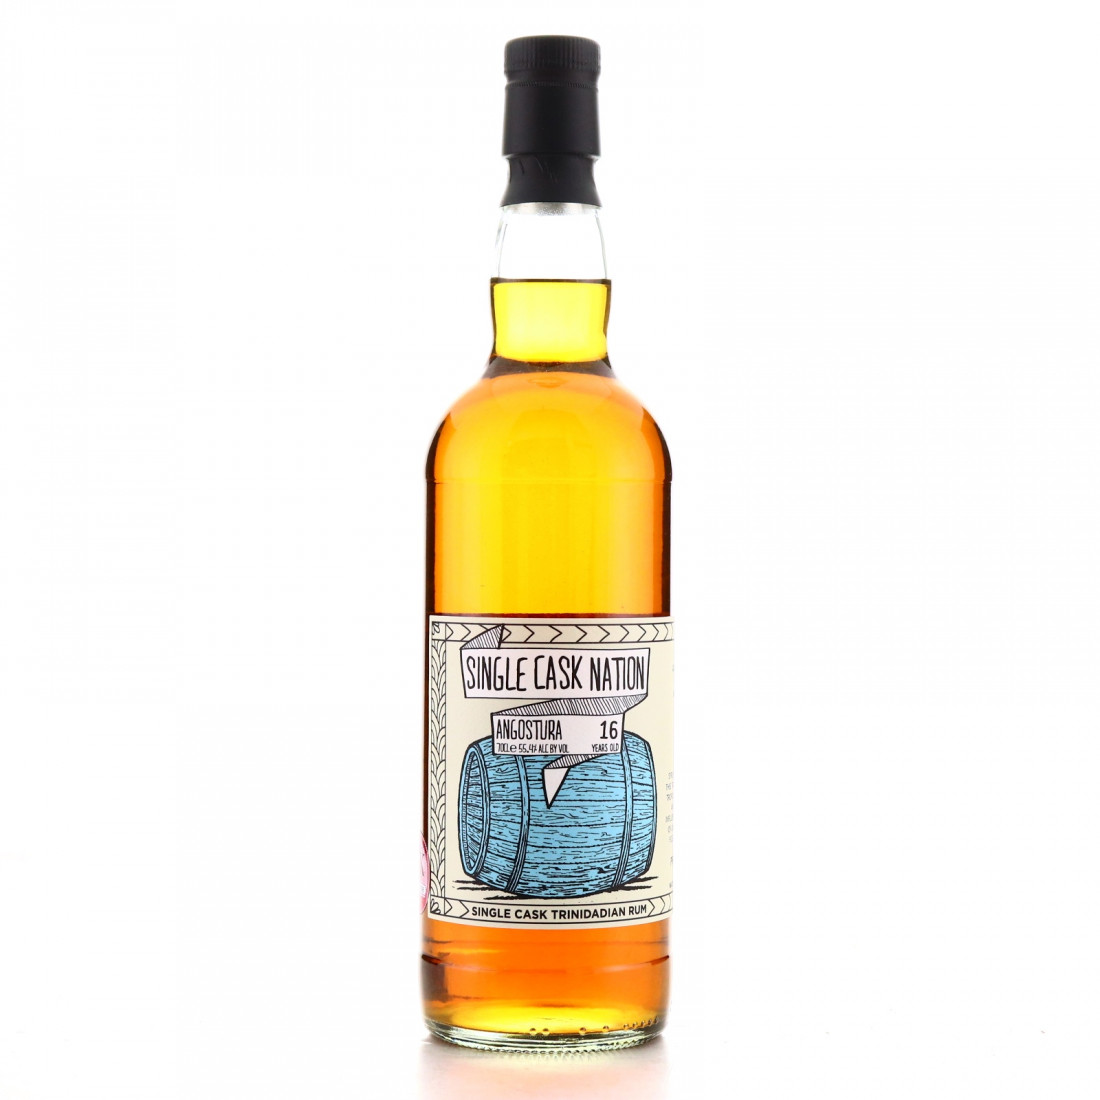 Angostura 2003 Single Cask Nation 16 Year Old